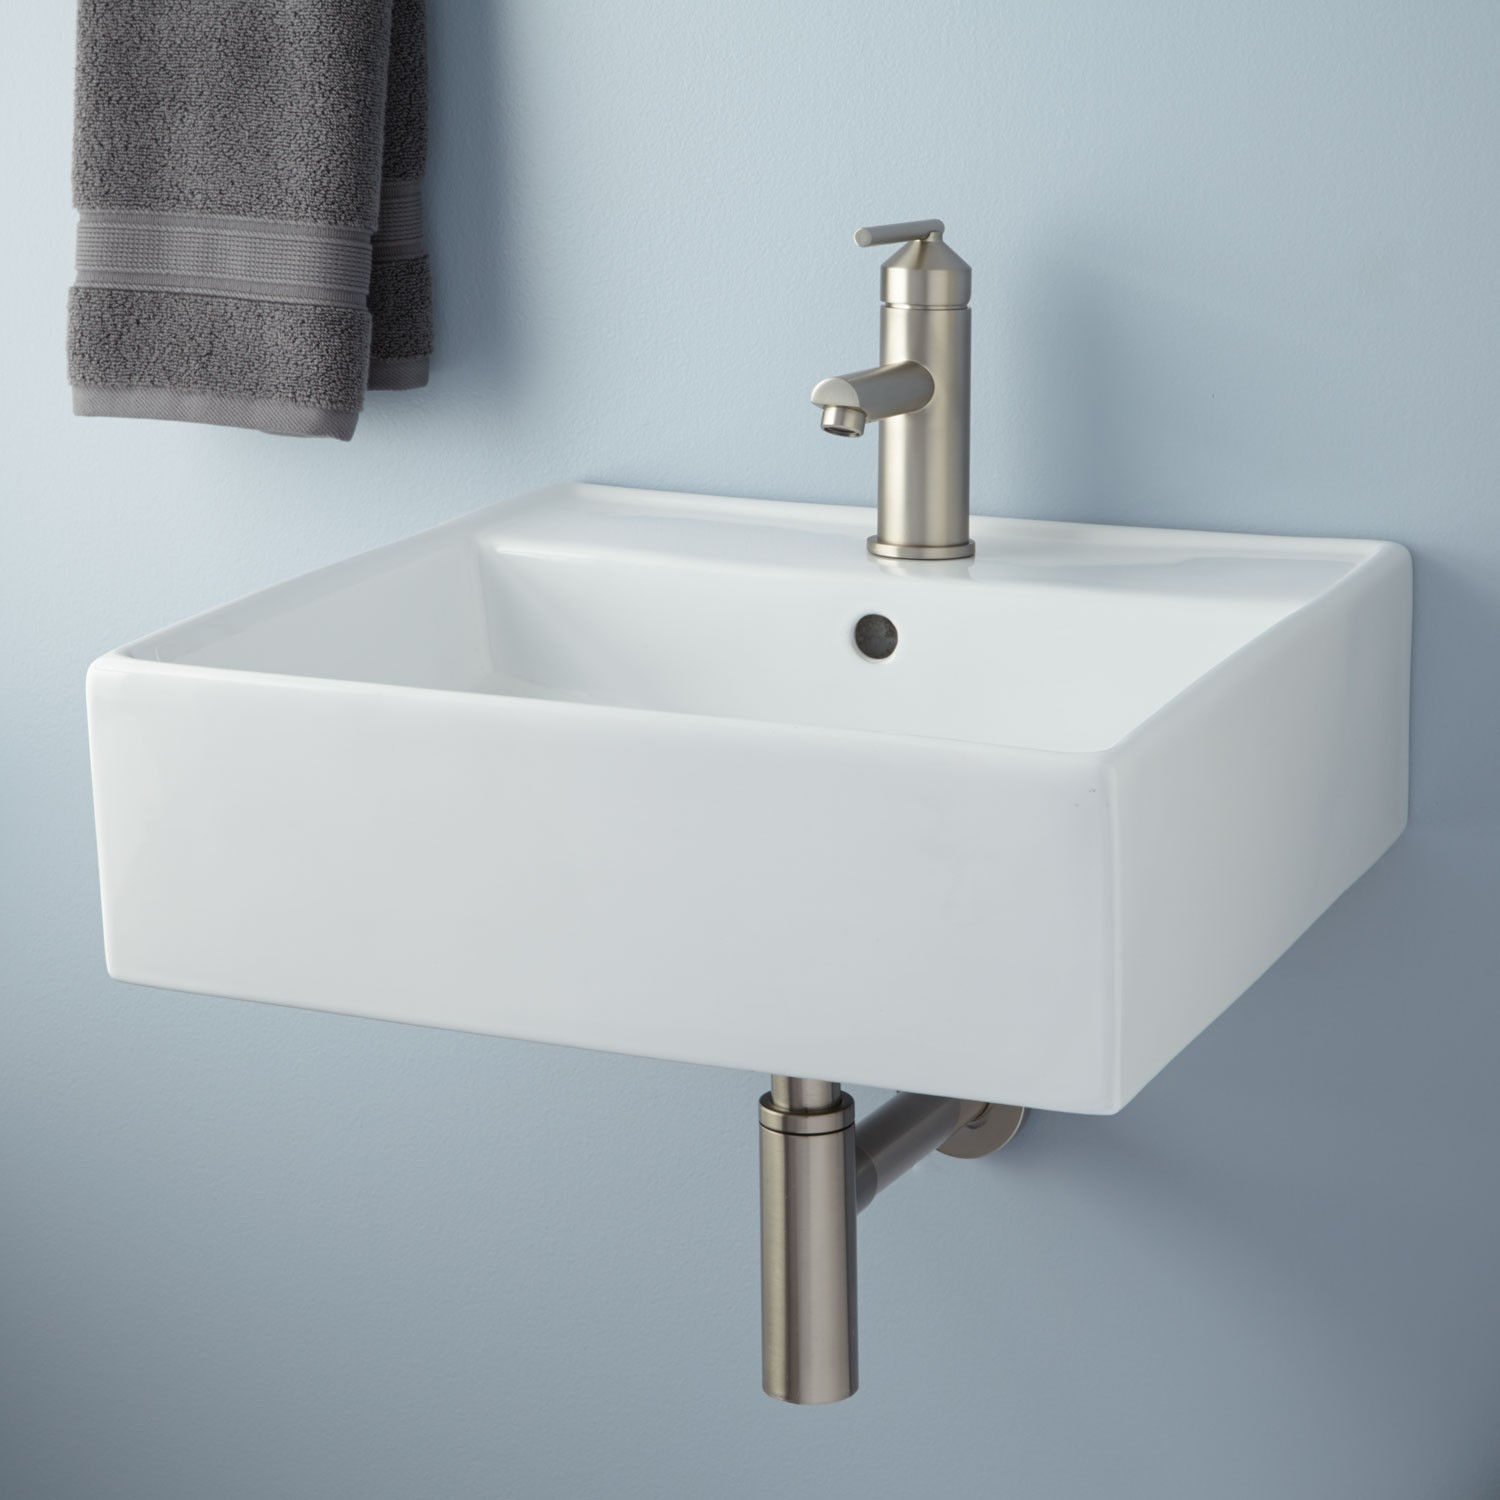 Wall Mount Bathroom Sinks Modern